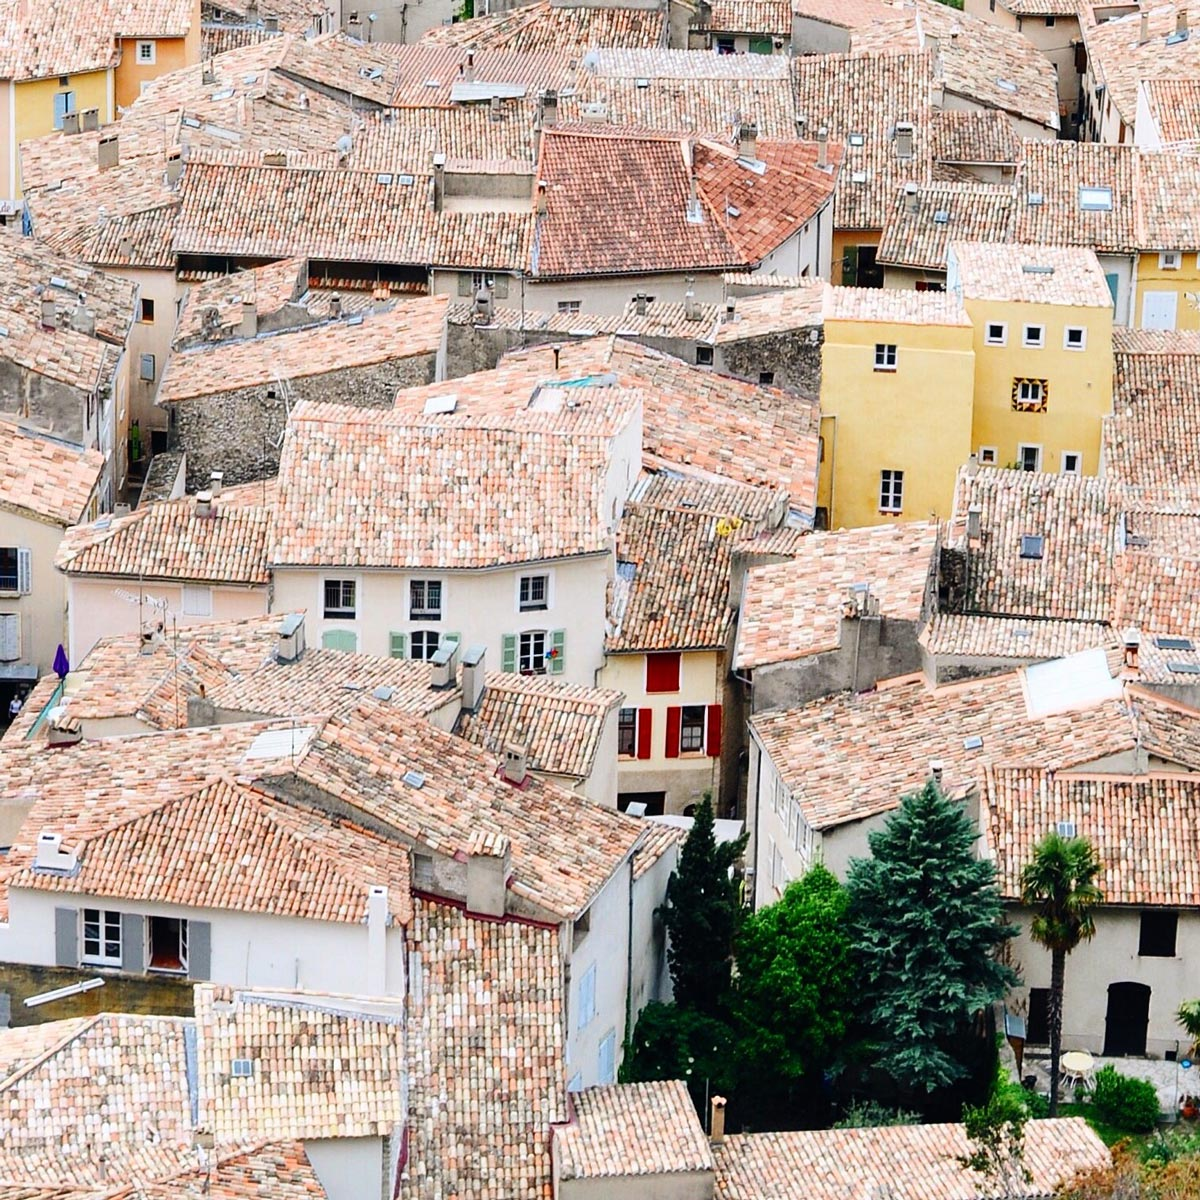 Photo by Lauren Wells of rooftops in Moustiers-Saint-Marie, France shot from roof of a building